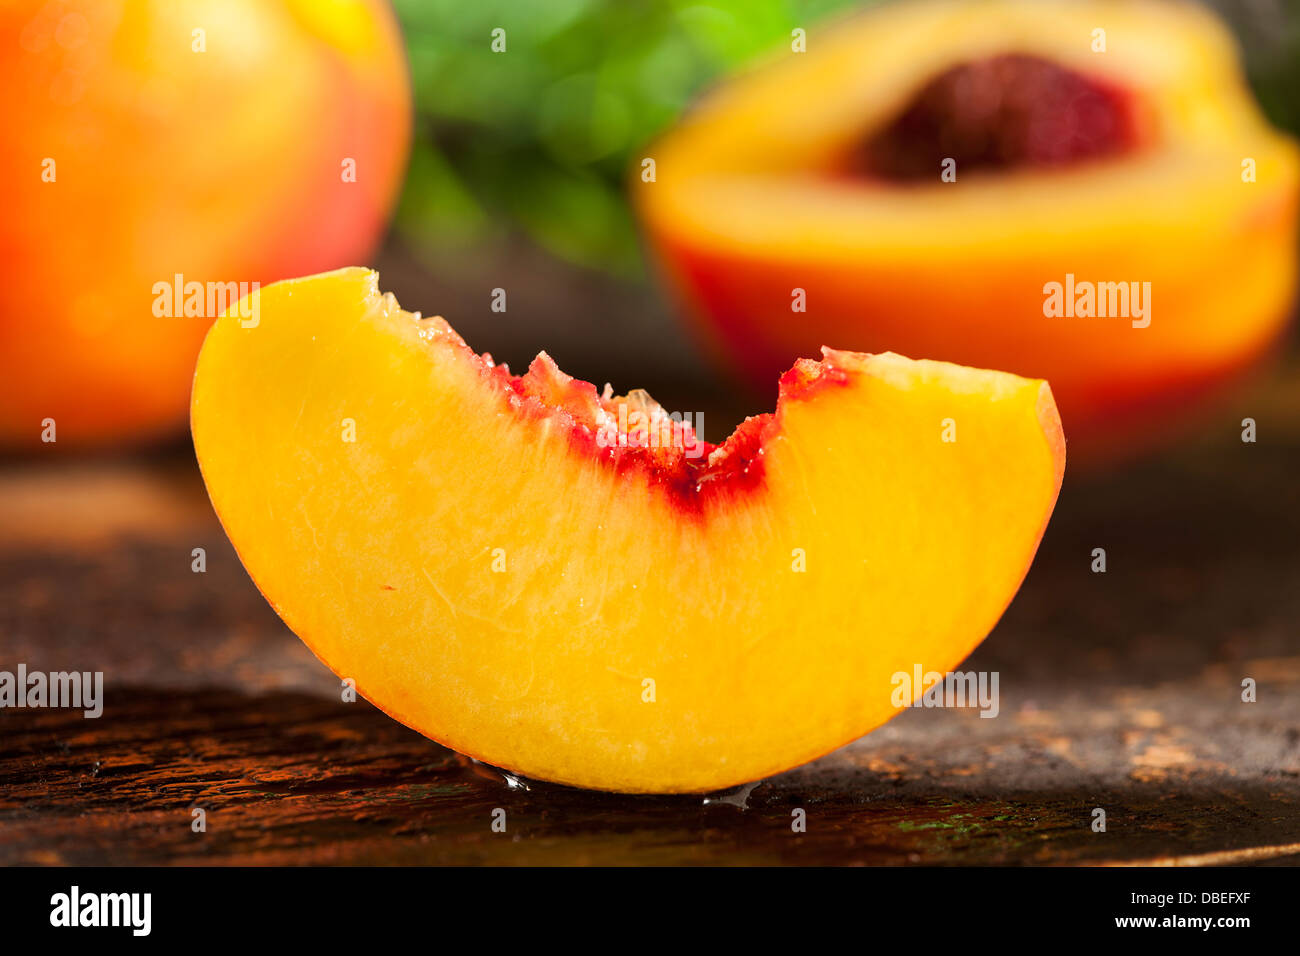 Organic Ripe Orange Peaches on a Background - Stock Image